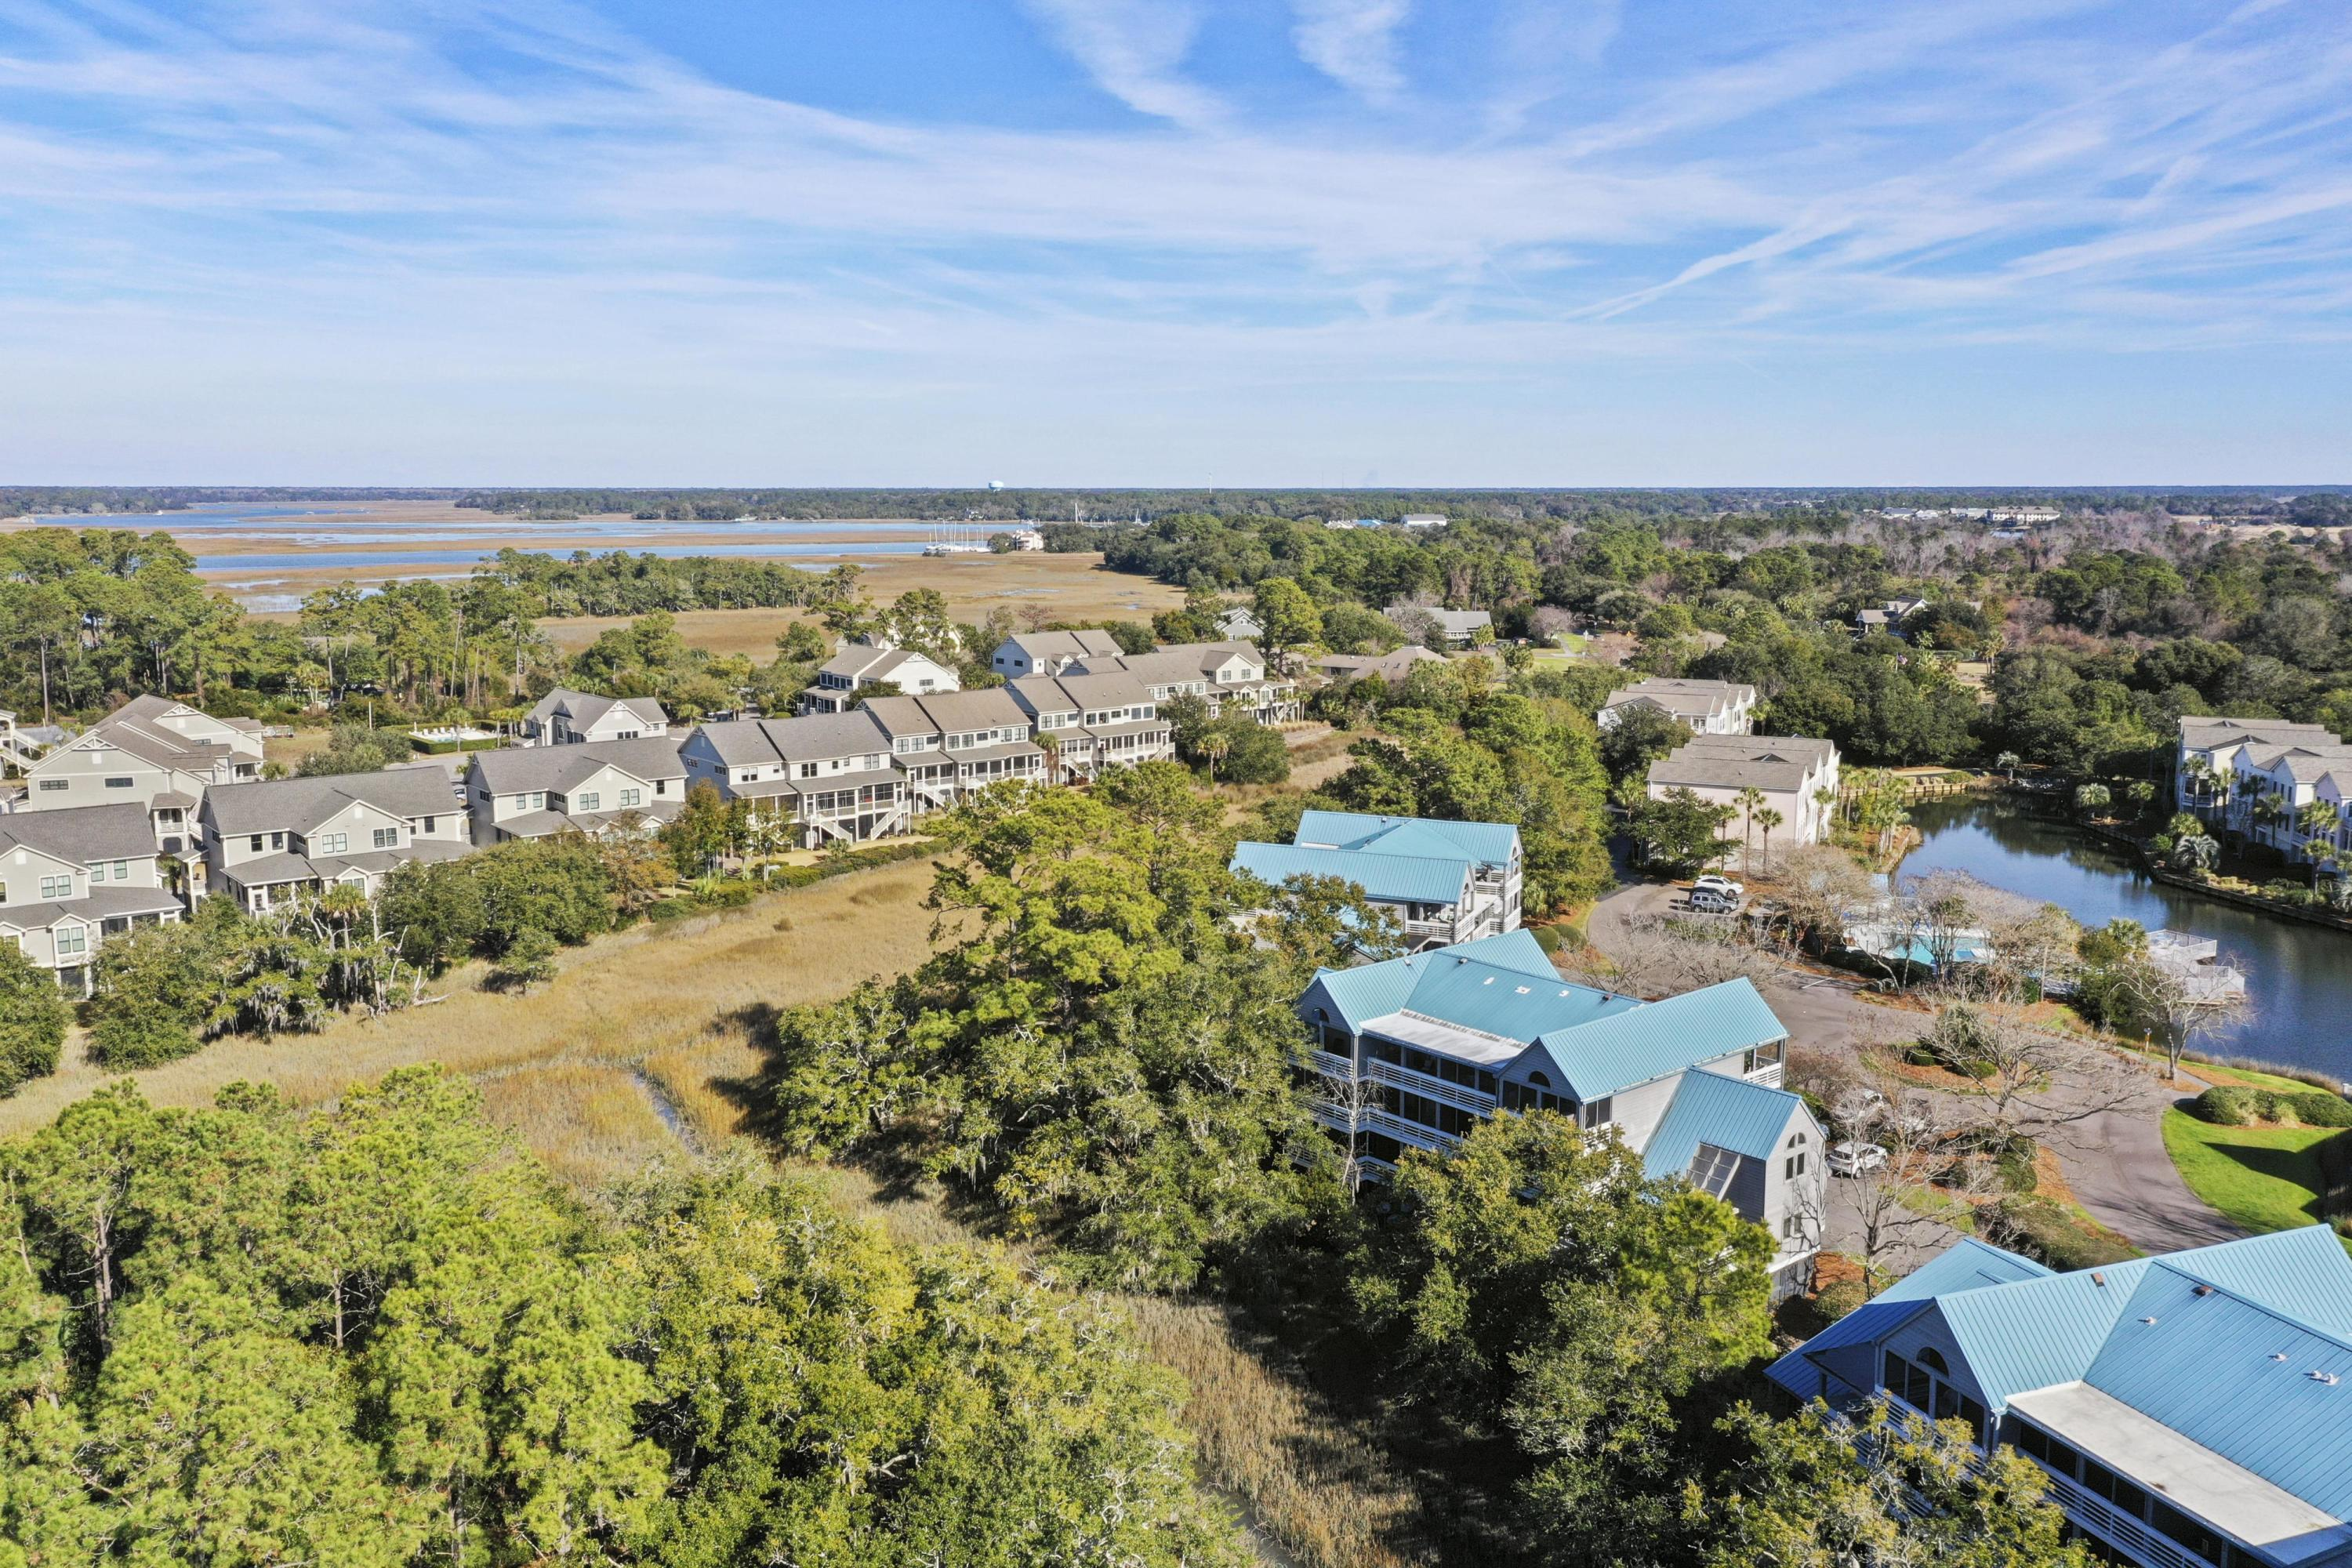 Seabrook Island Condos For Sale - 2416 Racquet Club, Seabrook Island, SC - 17